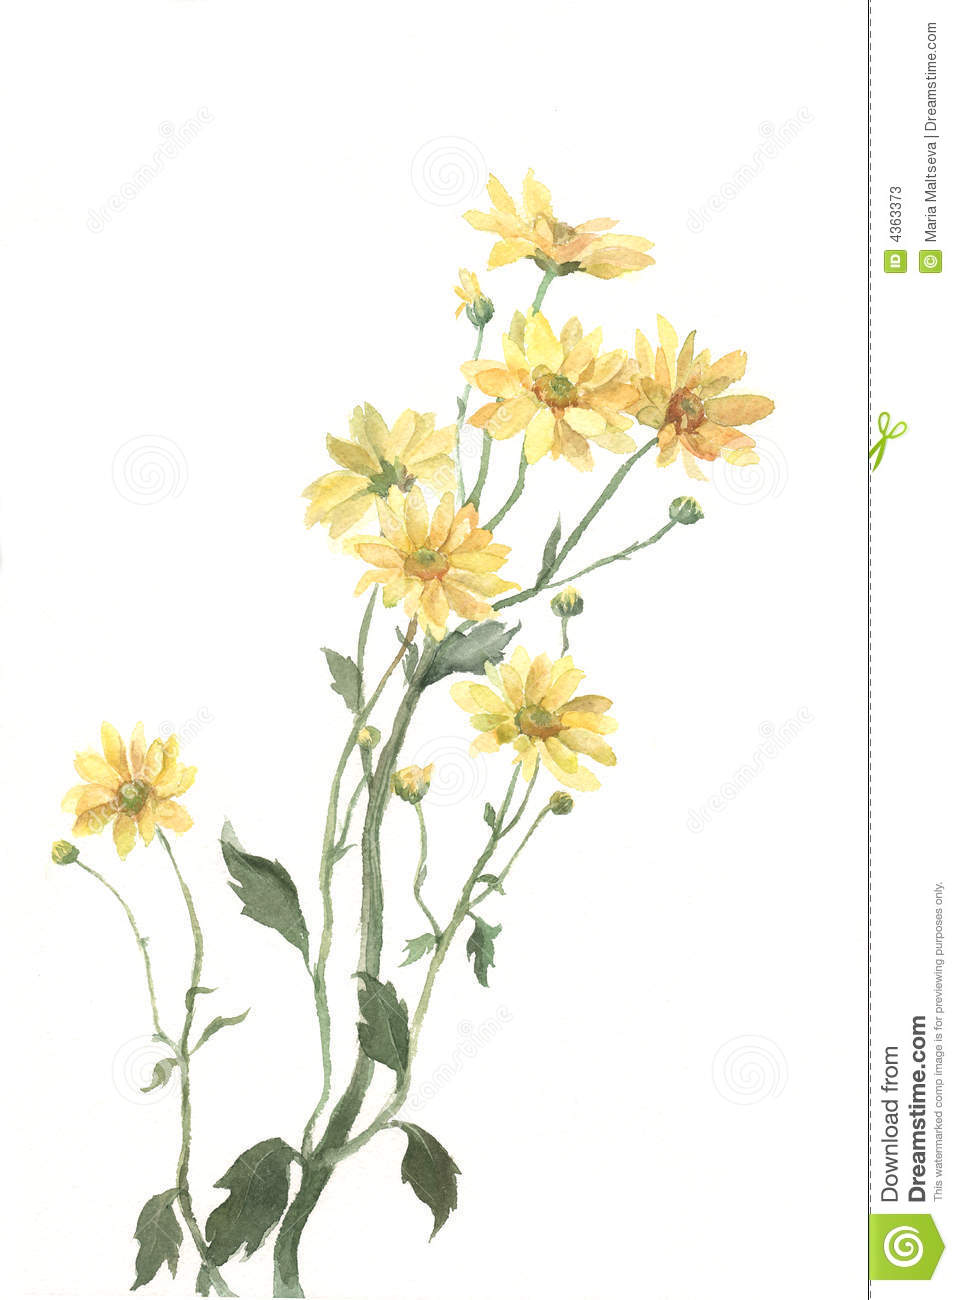 Yellow chrysanthemum flowers watercolor painting stock illustration yellow chrysanthemum flowers watercolor painting mightylinksfo